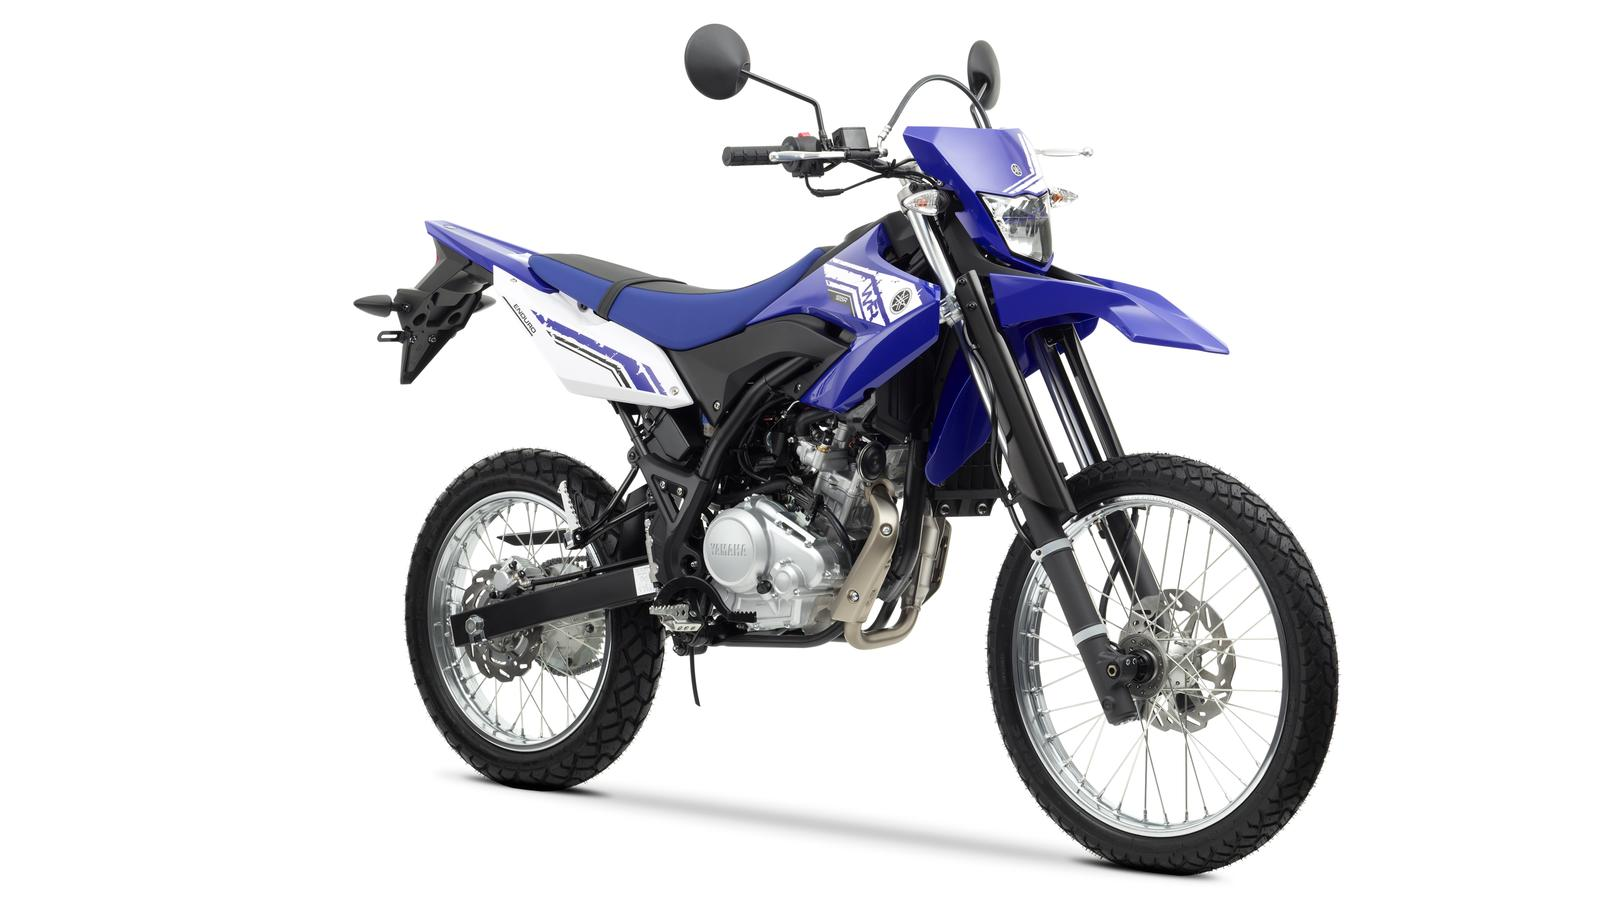 fiche revue technique yamaha wr 125 r 2011 pictures. Black Bedroom Furniture Sets. Home Design Ideas